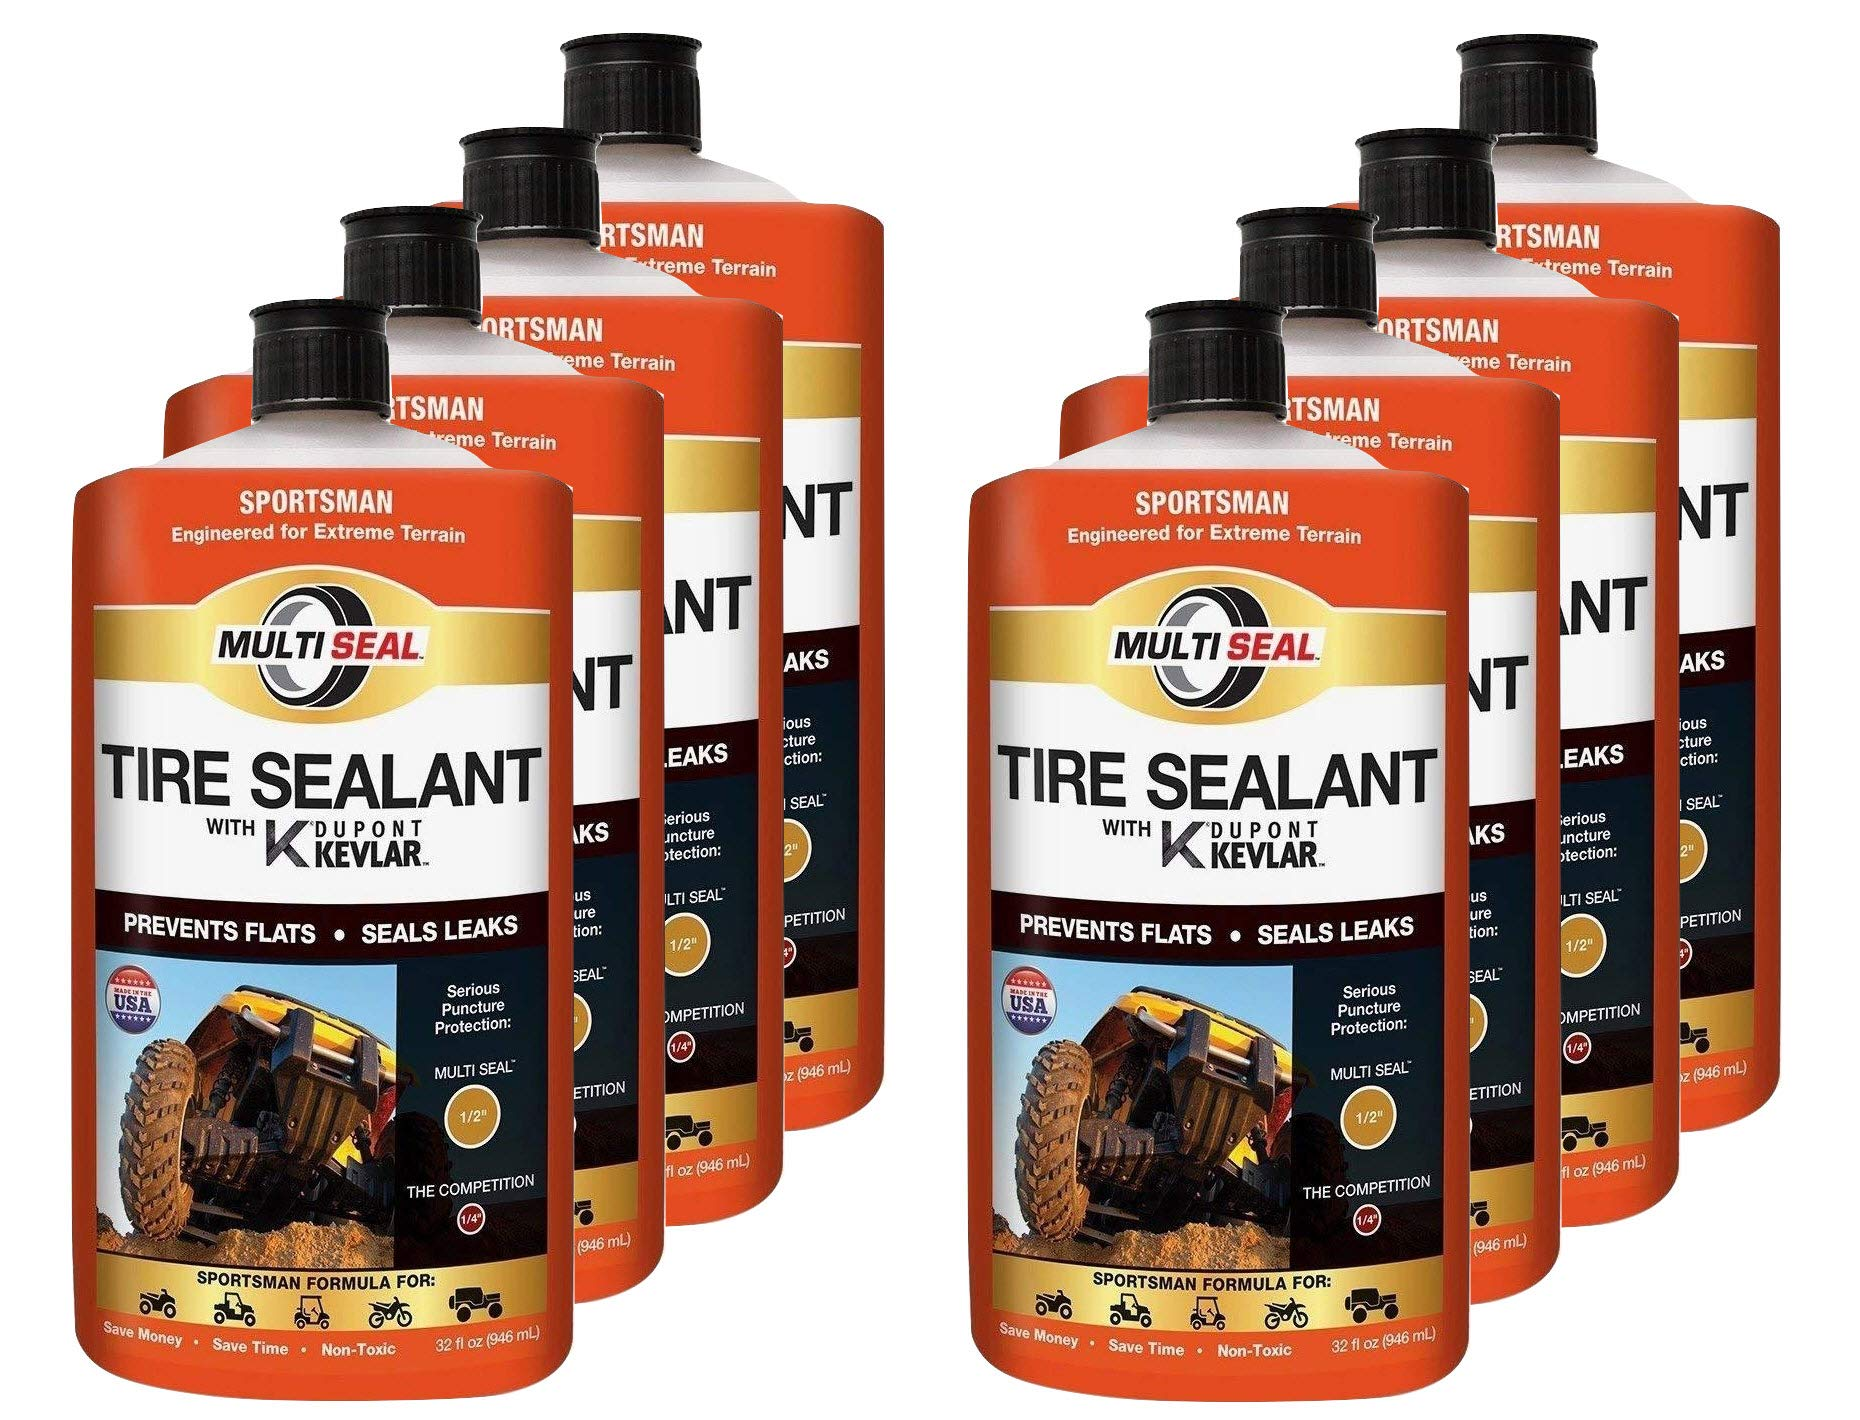 MULTI SEAL 20138 Tire Sealant with Kevlar (Sportsman Formula), Great for ATVs, UTVs / Side-by-Sides, Golf Carts, Dirt Bikes, Off-Road-Only Jeeps and more, 8-Pack (256 oz.)